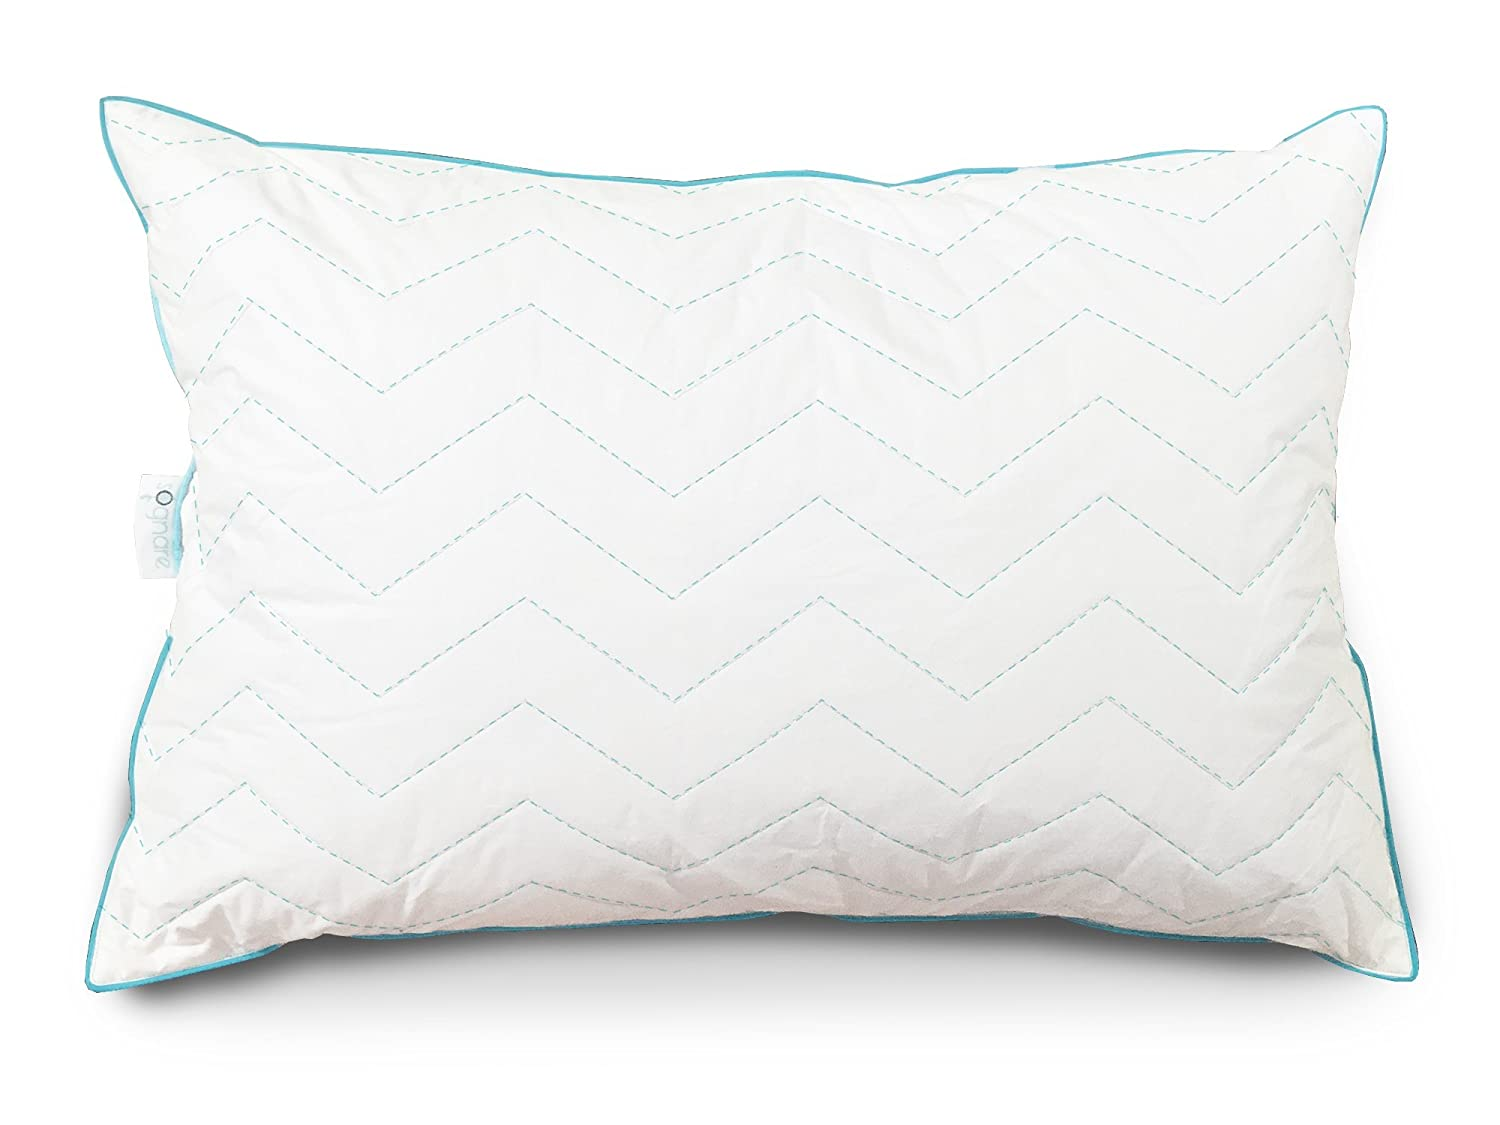 Amazon.com: Sognare, the Finest Soft Hypoallergenic Queen Size Pillow – 100% Premium Cotton, soft gel microfiber filling. The Best balance between firmness ...